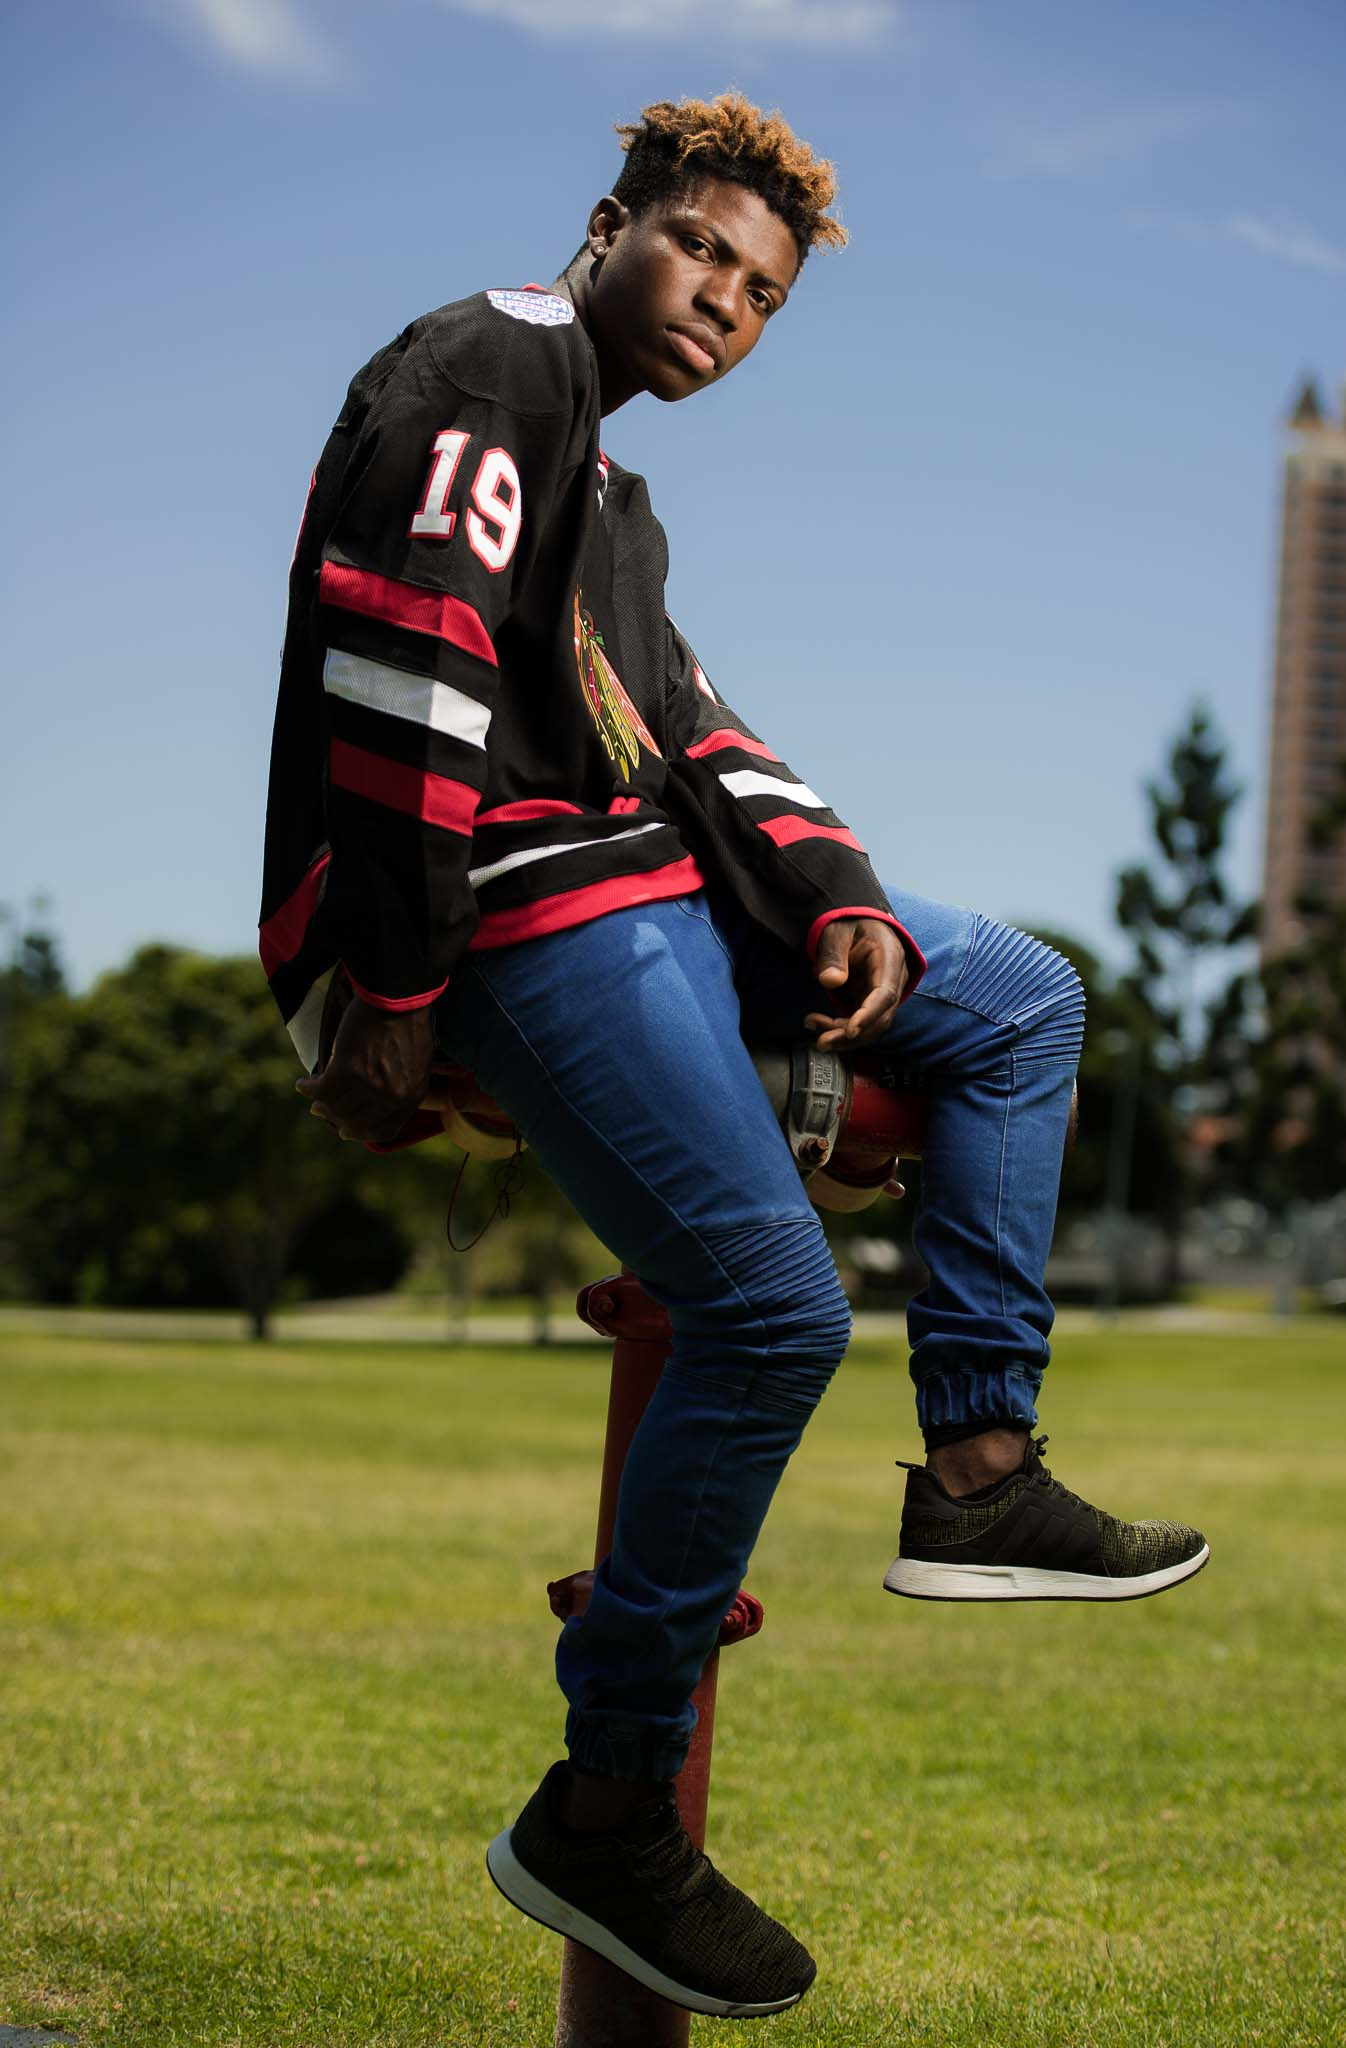 Bibby seated on top of a fire hydrant wearing jeans and an American hockey sweater